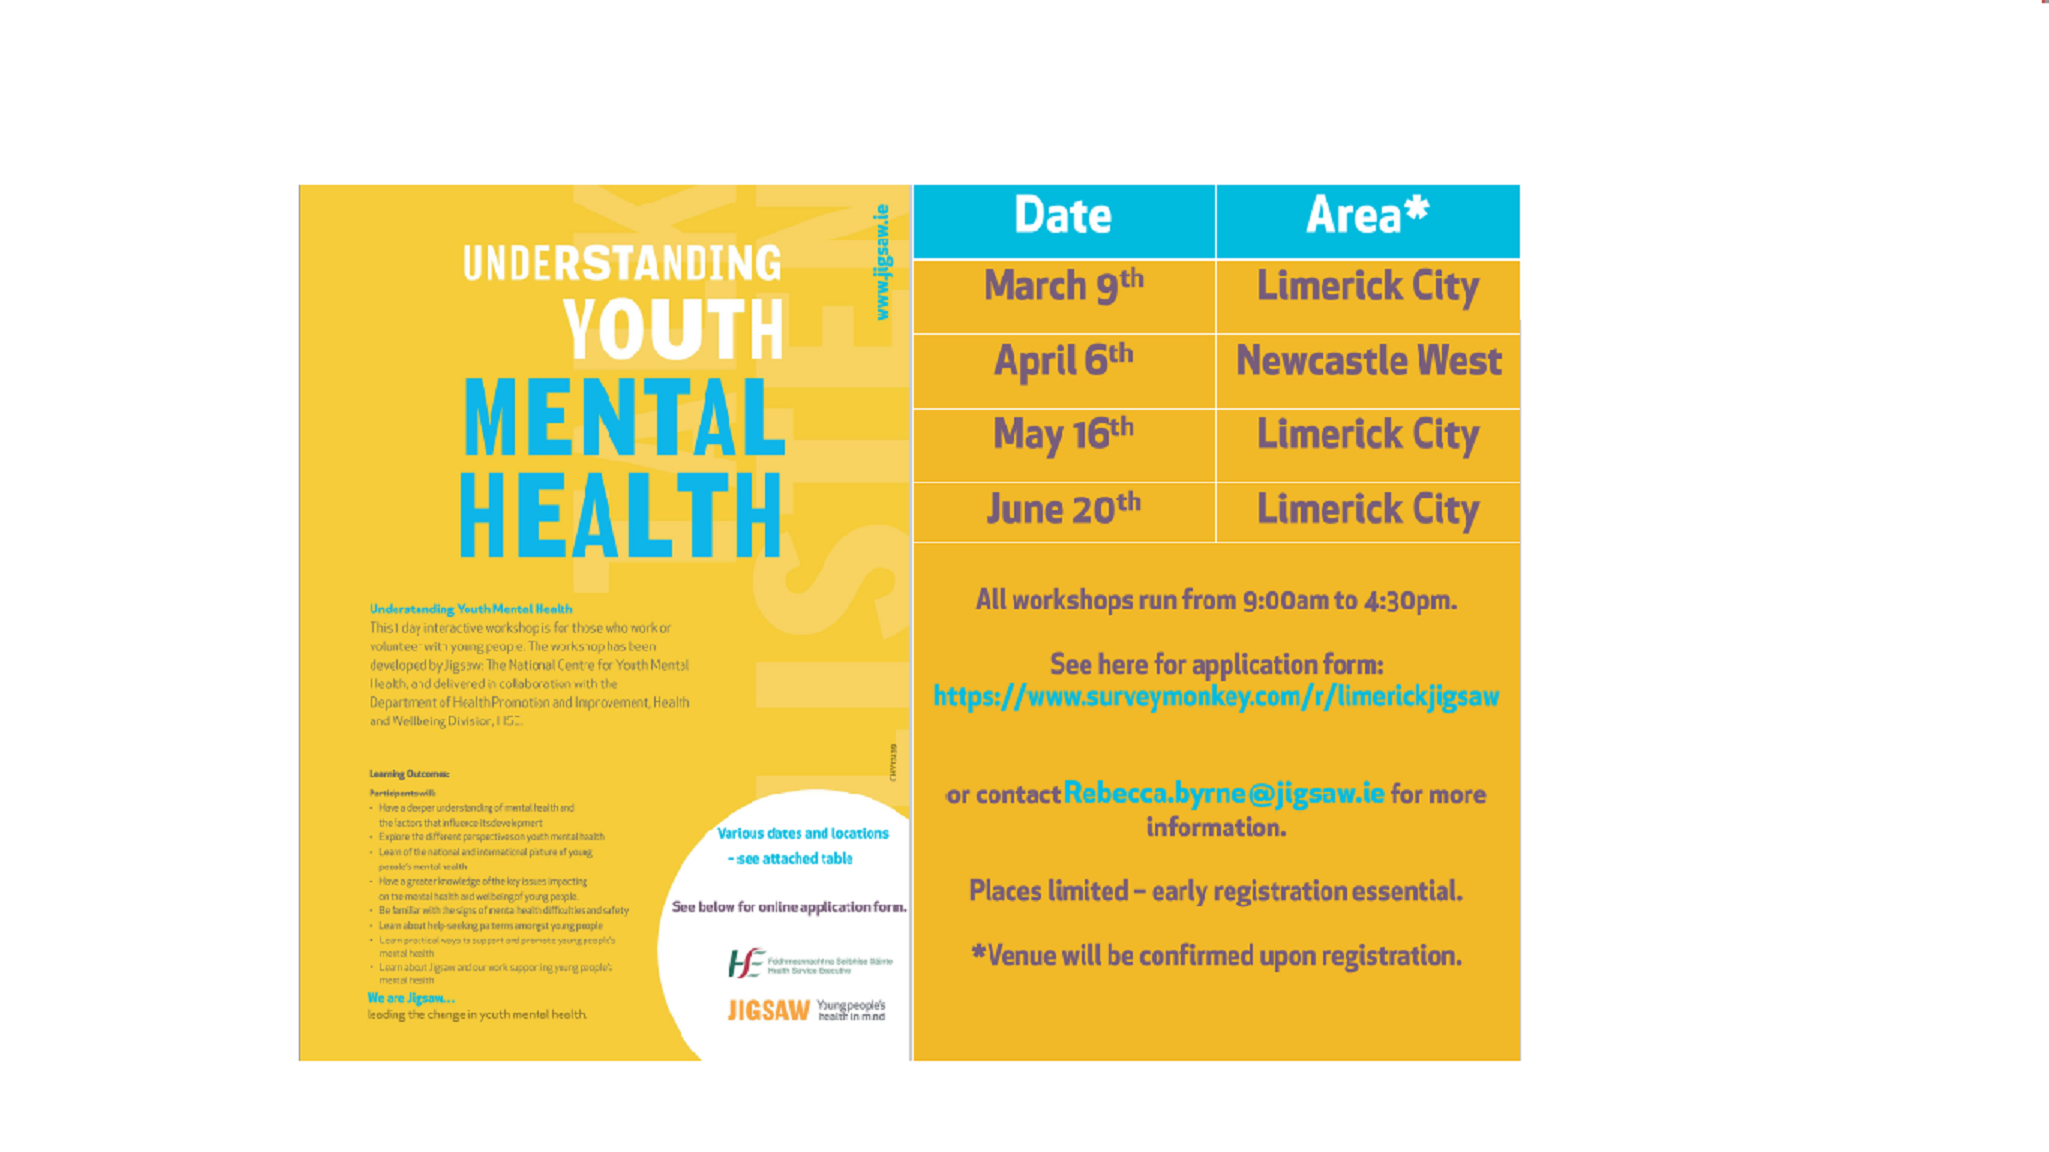 understanding youth mental health